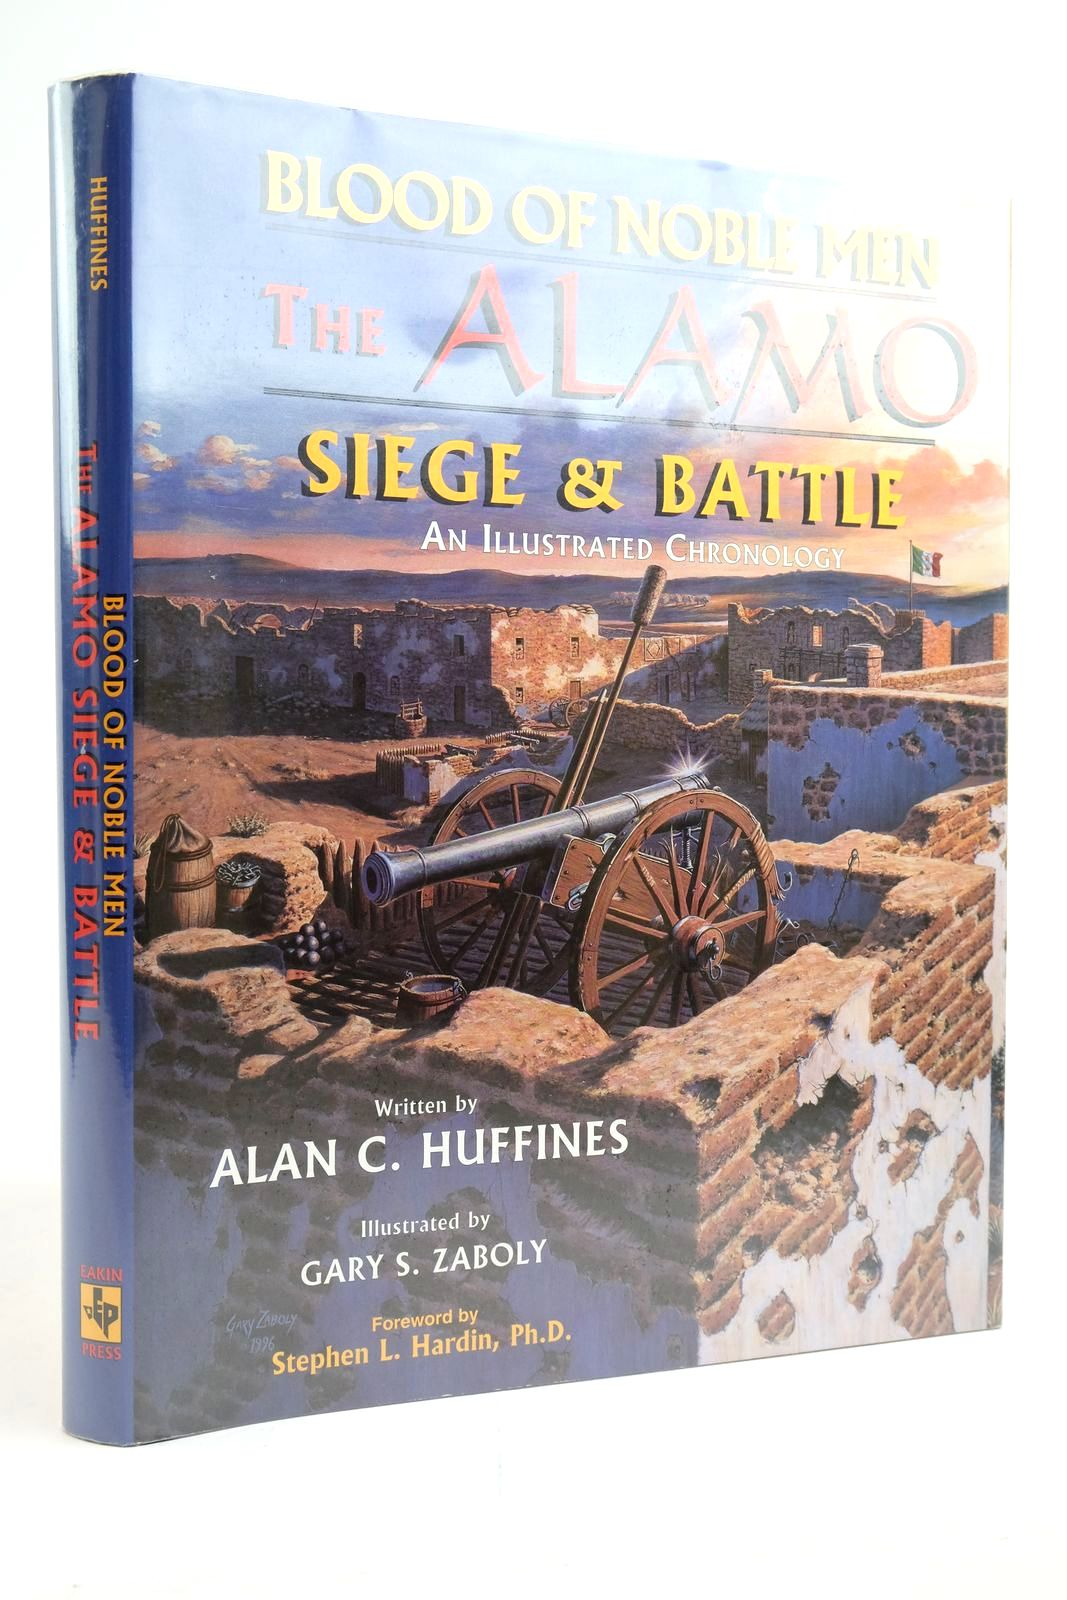 Photo of BLOOD OF NOBLE MEN: THE ALAMO SIEGE & BATTLE written by Huffines, Alan C. Hardin, Stephen L. illustrated by Zaboly, Gary S. published by Eakin Press (STOCK CODE: 2135264)  for sale by Stella & Rose's Books